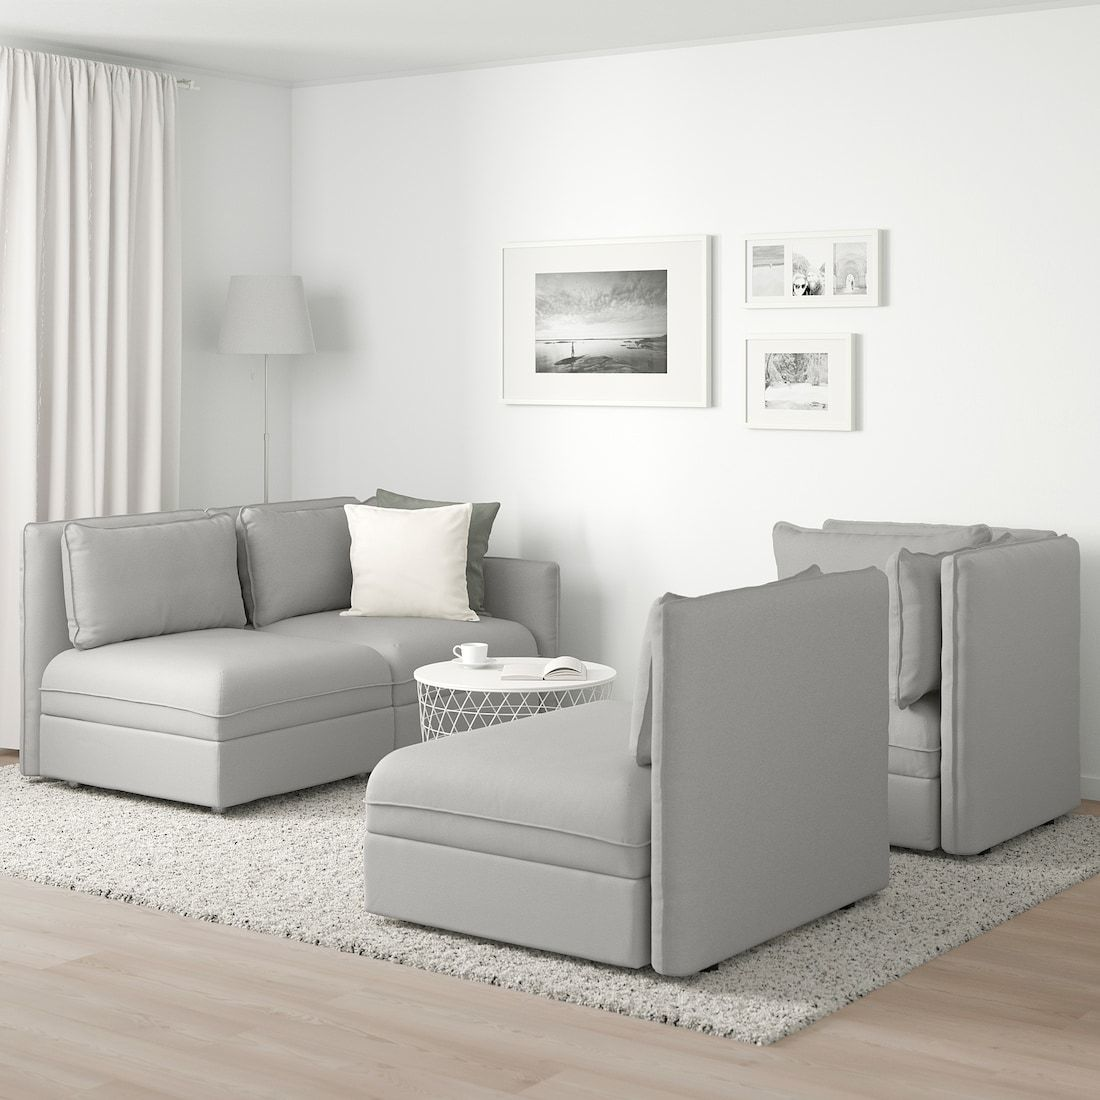 Vallentuna With Storage Ramna Light Grey Modular Corner Sofa 3 Seat Ikea In 2020 Modular Corner Sofa Corner Sofa Vallentuna